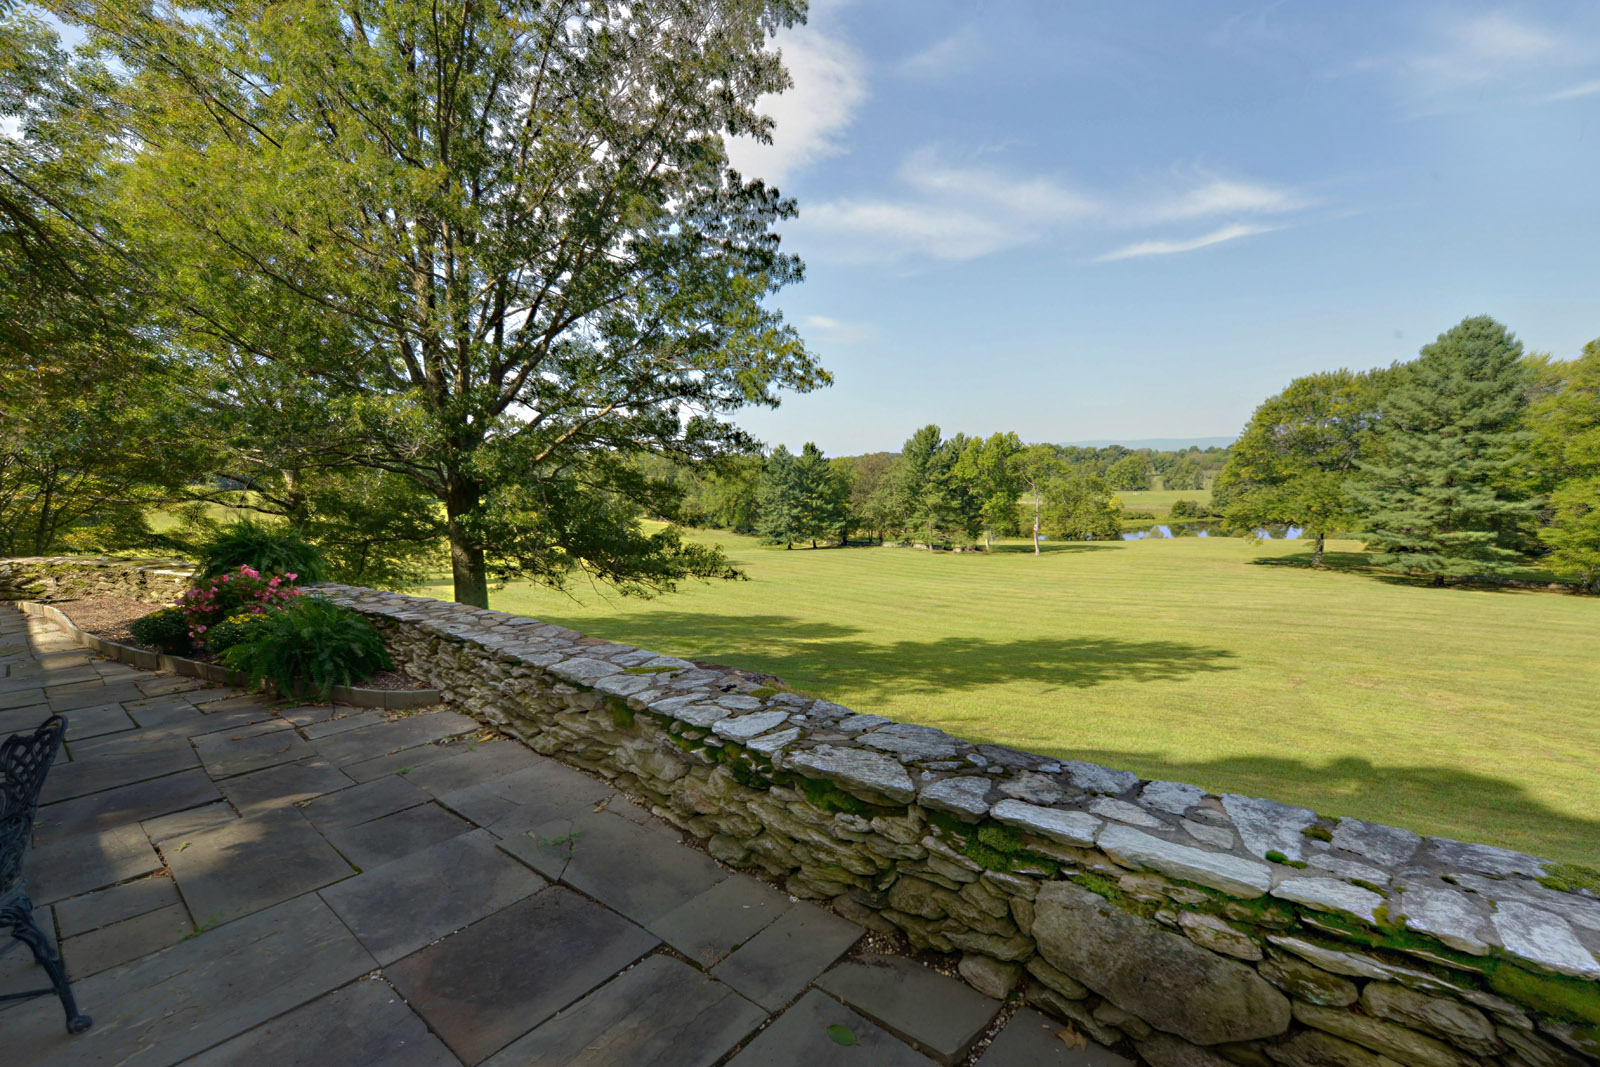 This photo provided by Thomas and Talbot Real Estate shows a  large pond that lies on the more than 166-acres Wexford Estate in Marshall, Virginia. Nestled on the property is the 1963 retreat that Jacqueline Kennedy Onassis designed for her family. The property is selling for $5.9 million. (Courtesy Thomas and Talbot Real Estate and Mona Botwick Photography)